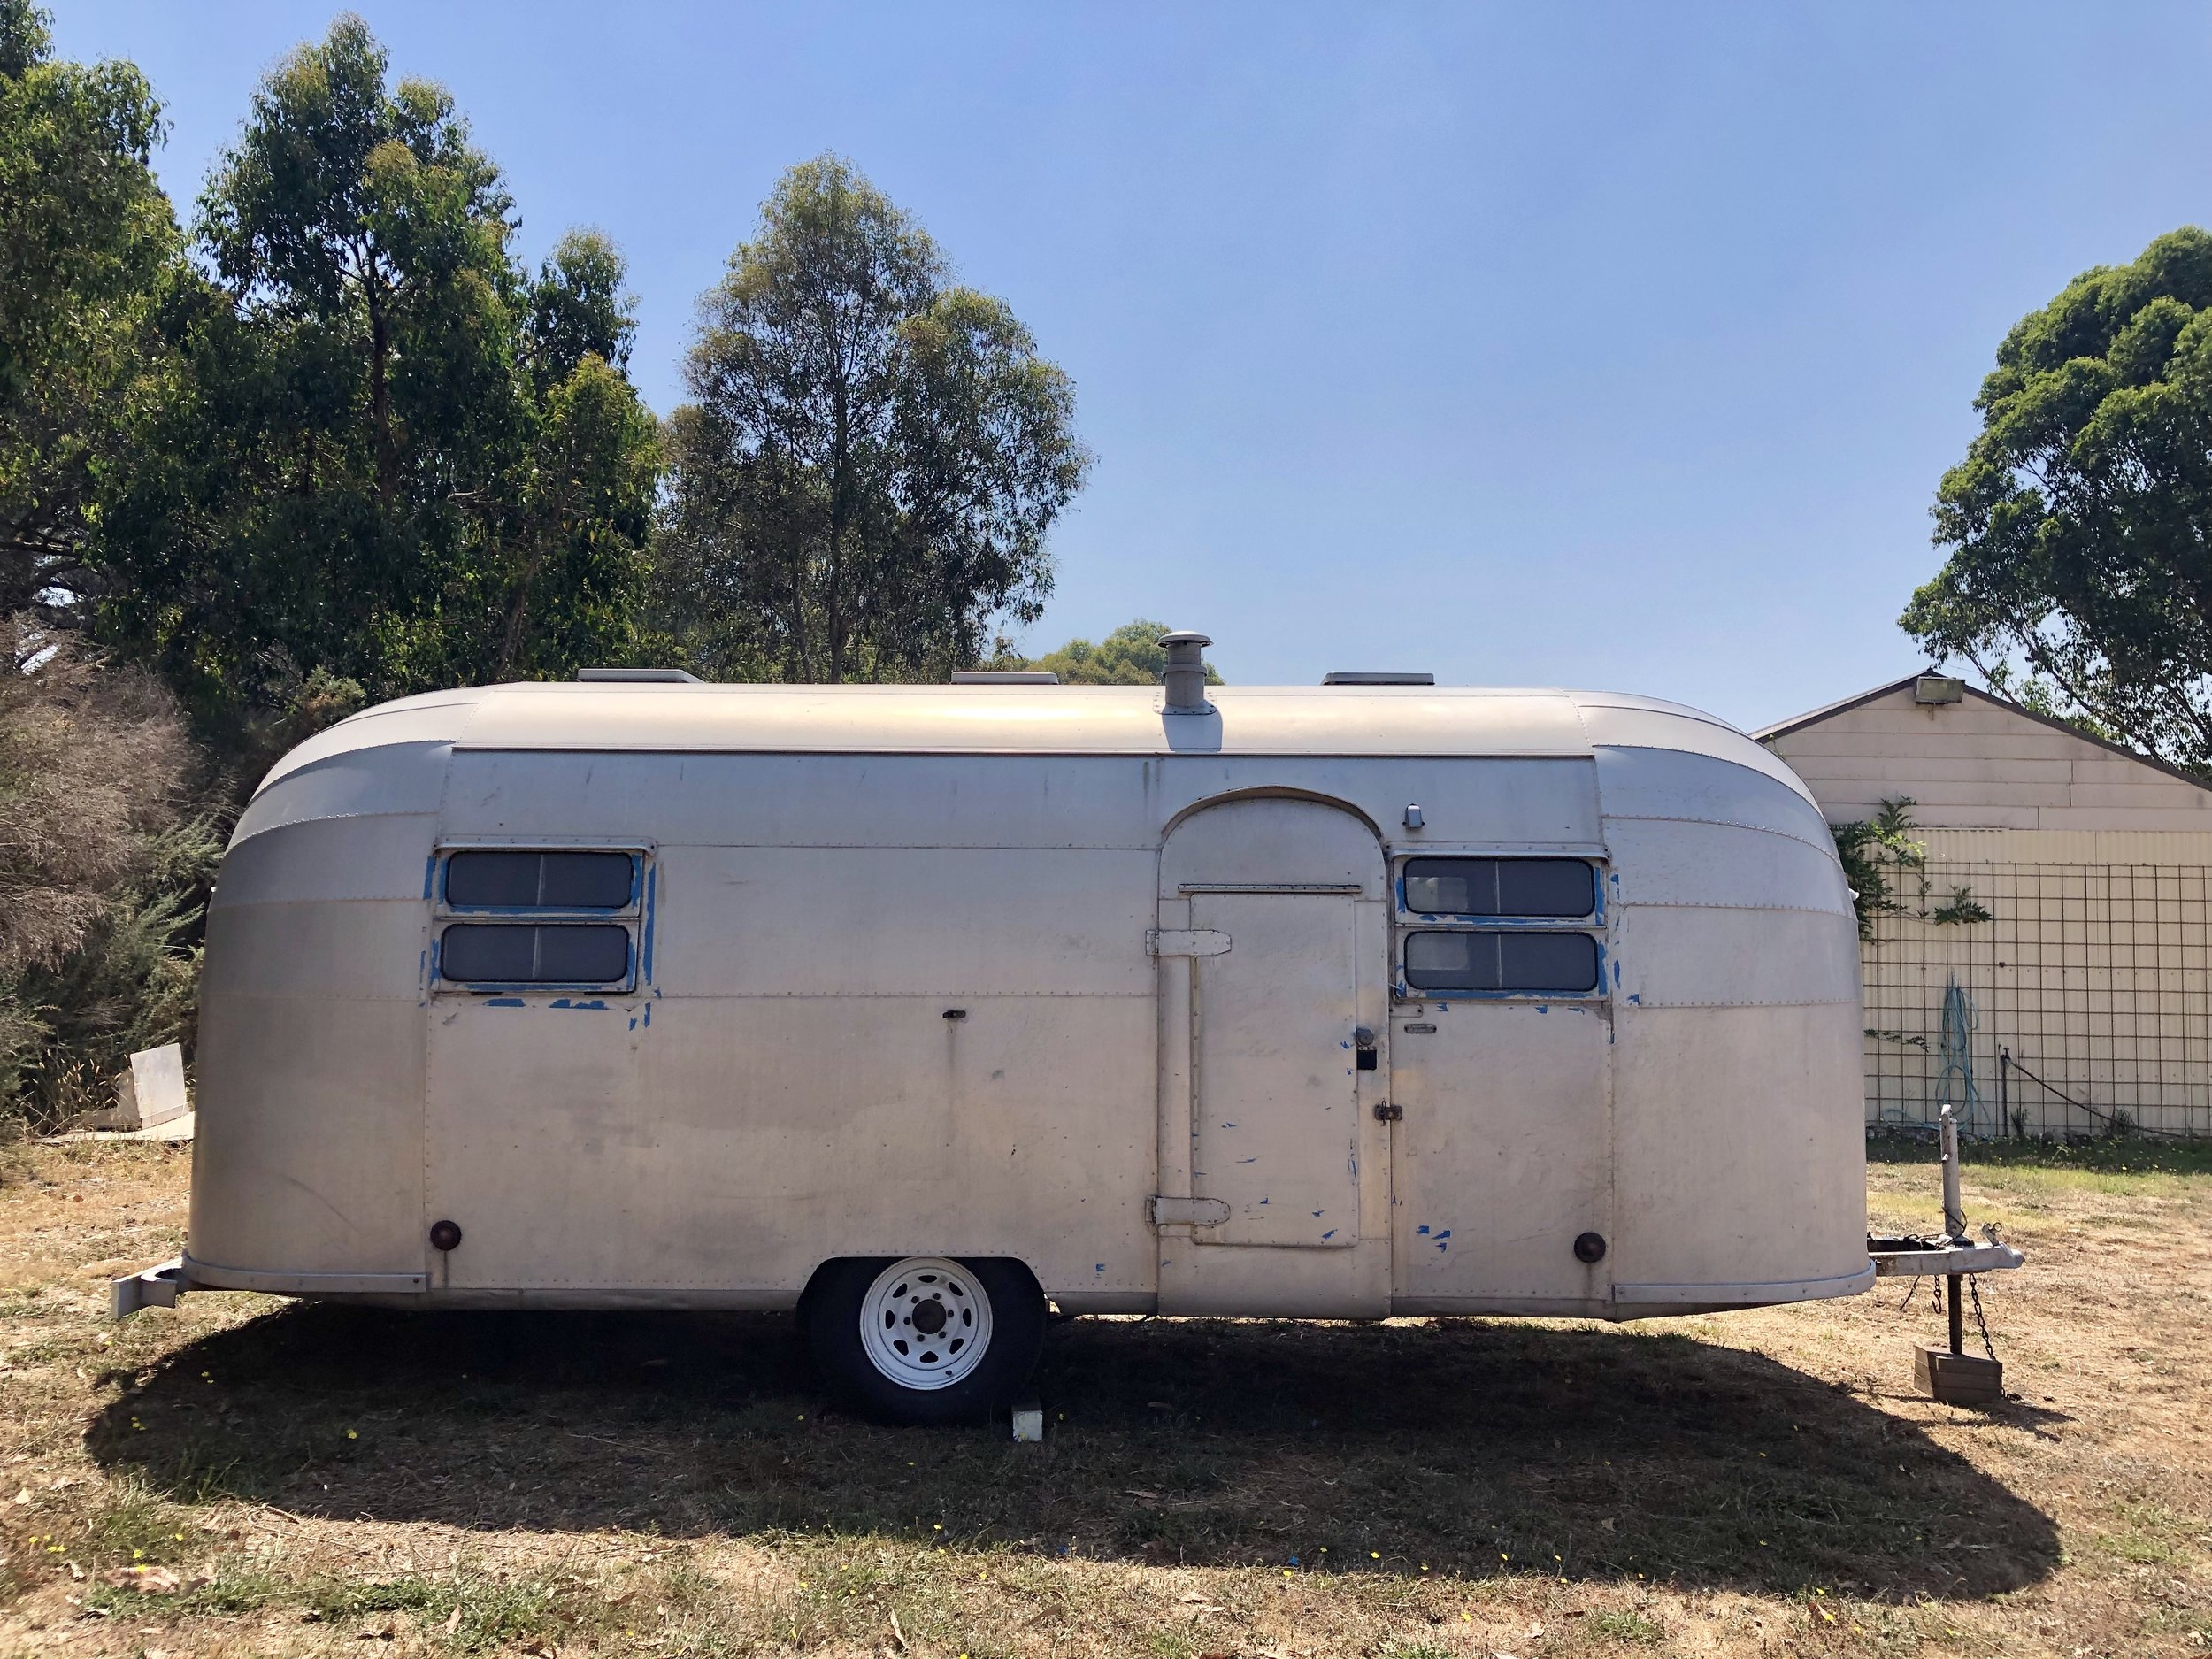 Dot the Airstream, 1952 Flying Cloud, imported in Melbourne Australia from Kansas USA